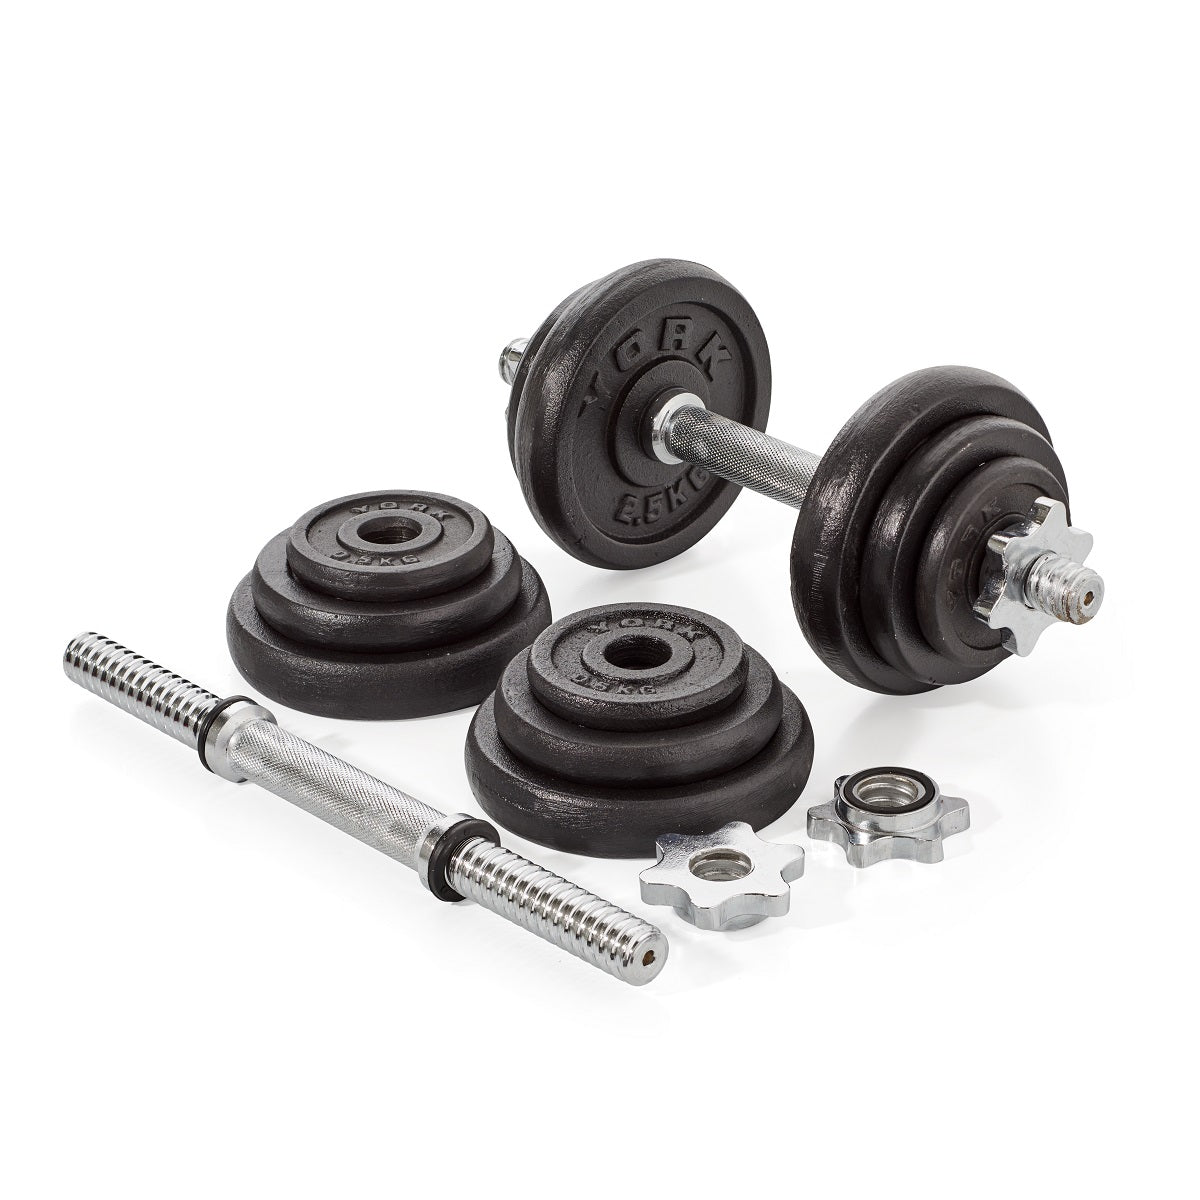 York 30kg Dumbbell Set: York Fitness 20 KG Black Cast Iron Dumbbell Spinlock Set